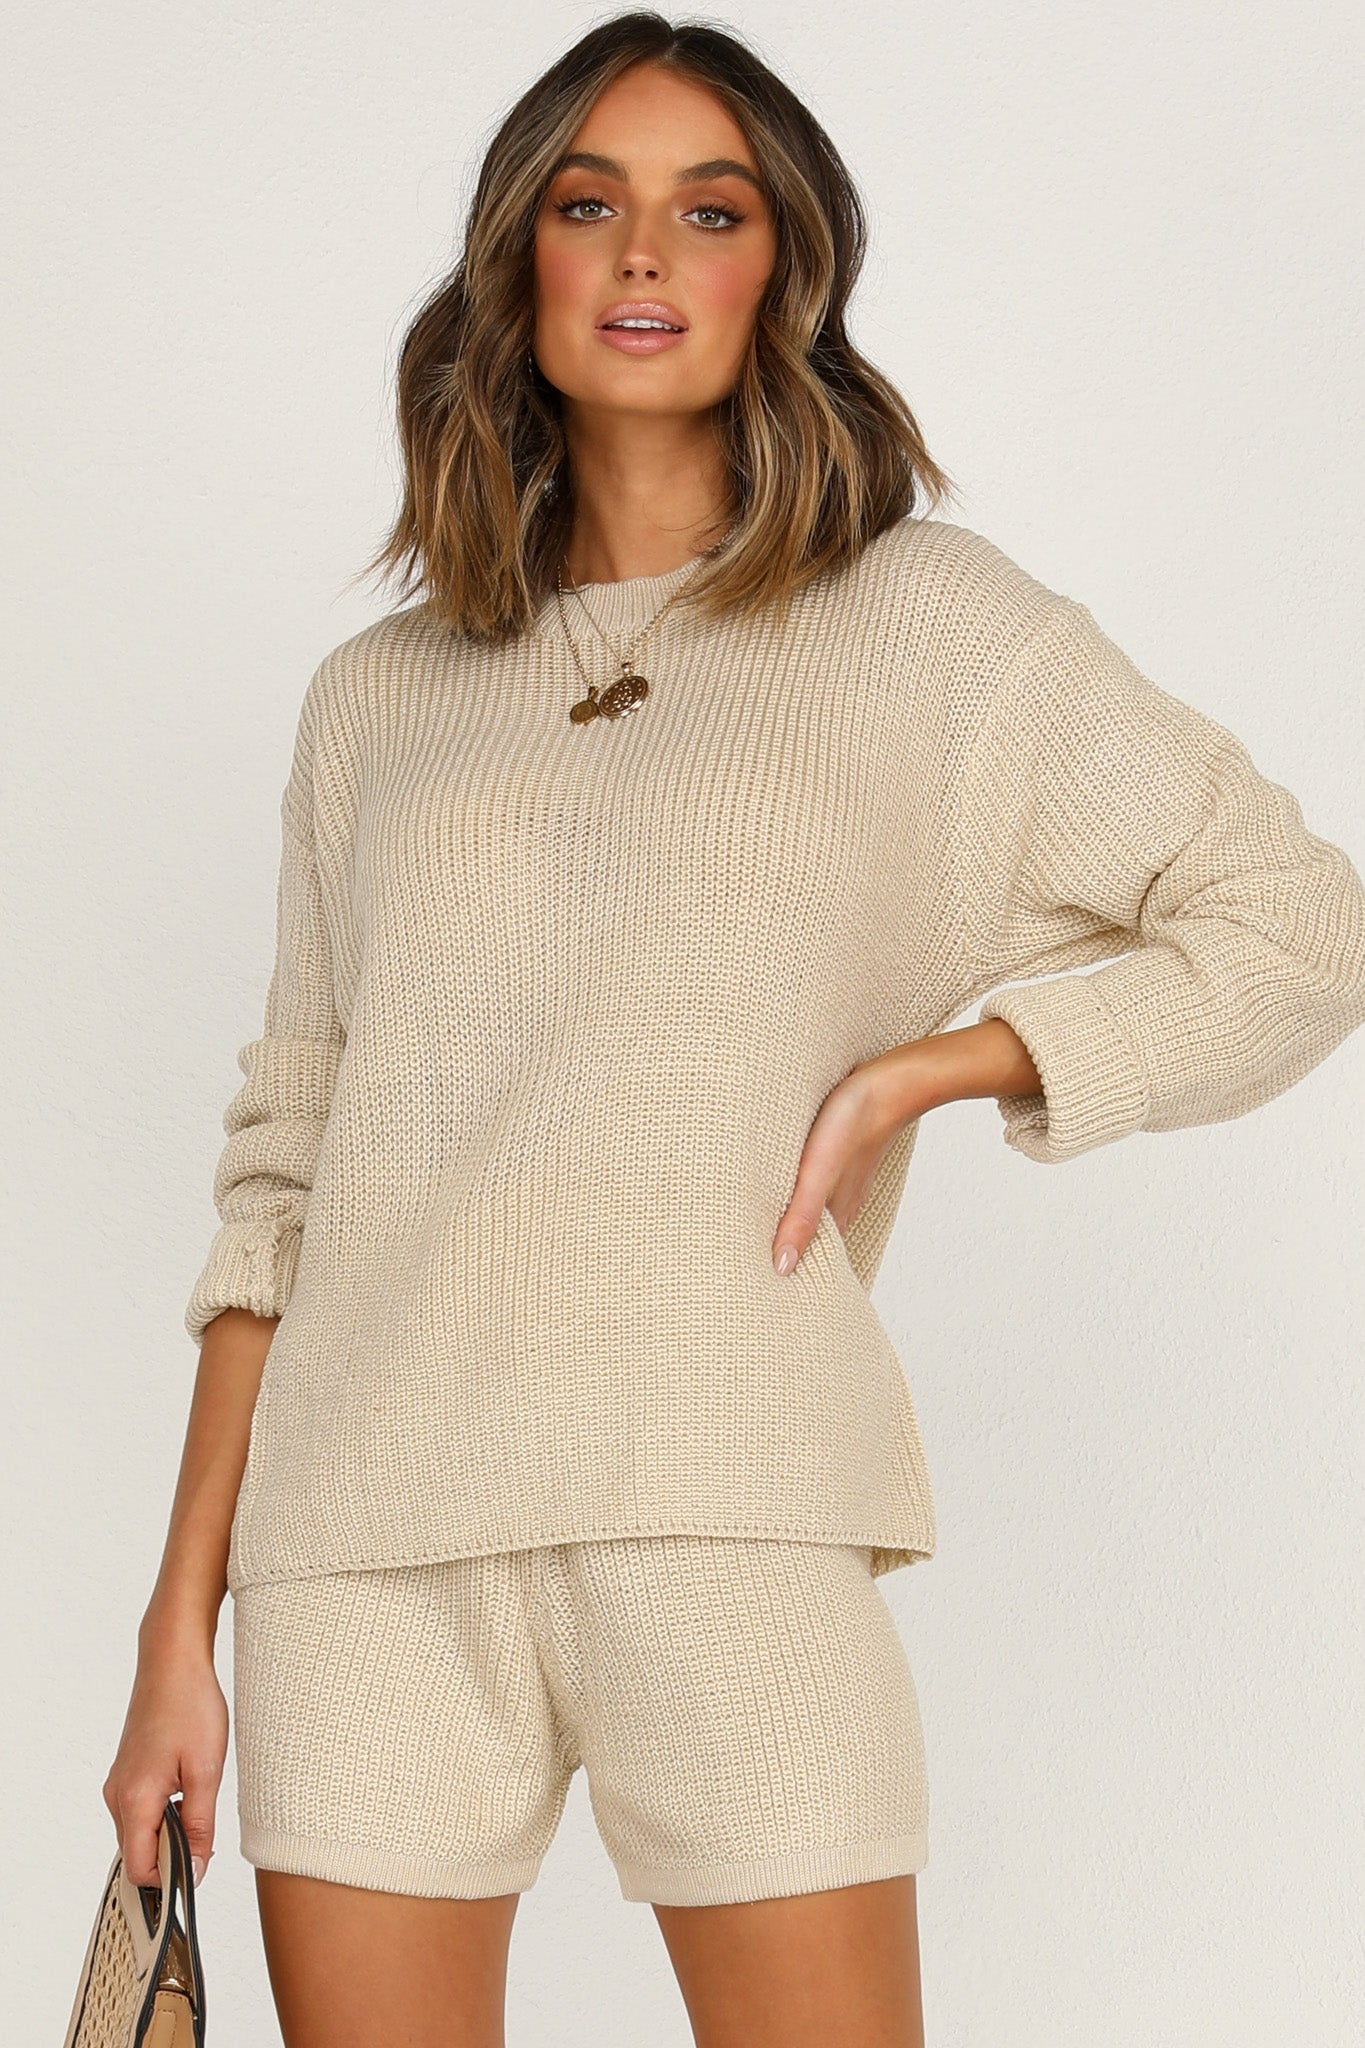 Magic Hour Knit Top (Beige)